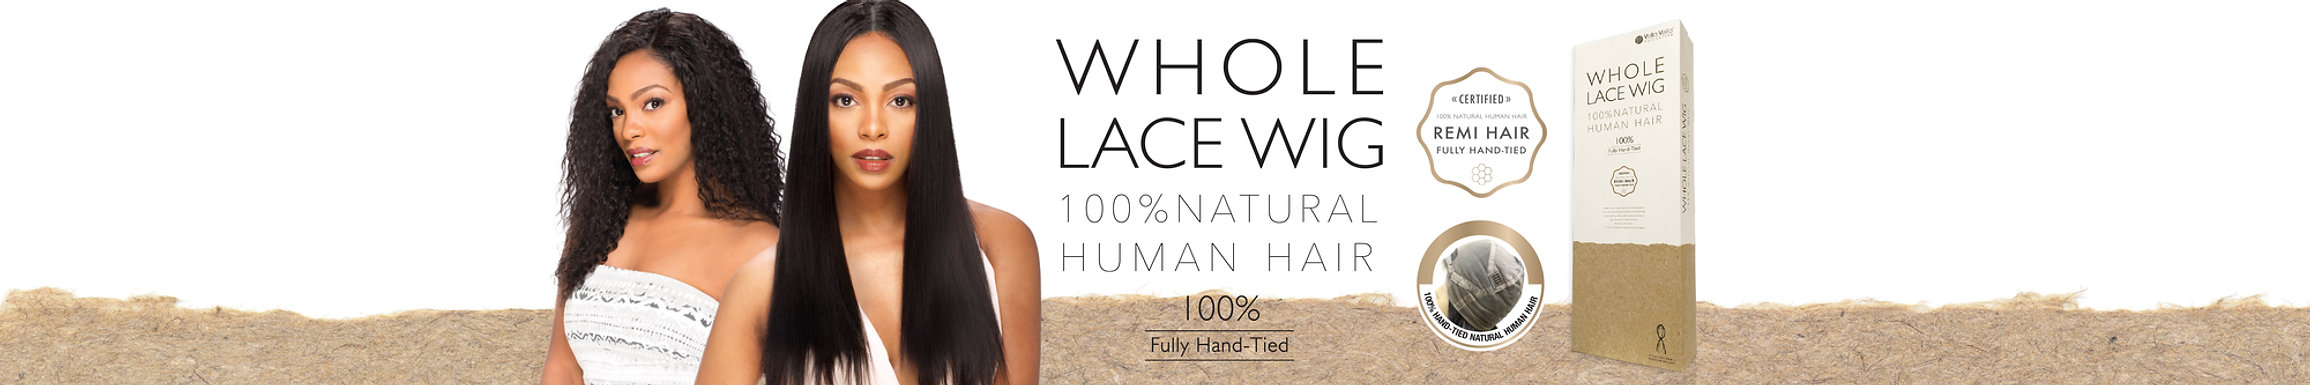 Natural_Whole Lace wig.jpg